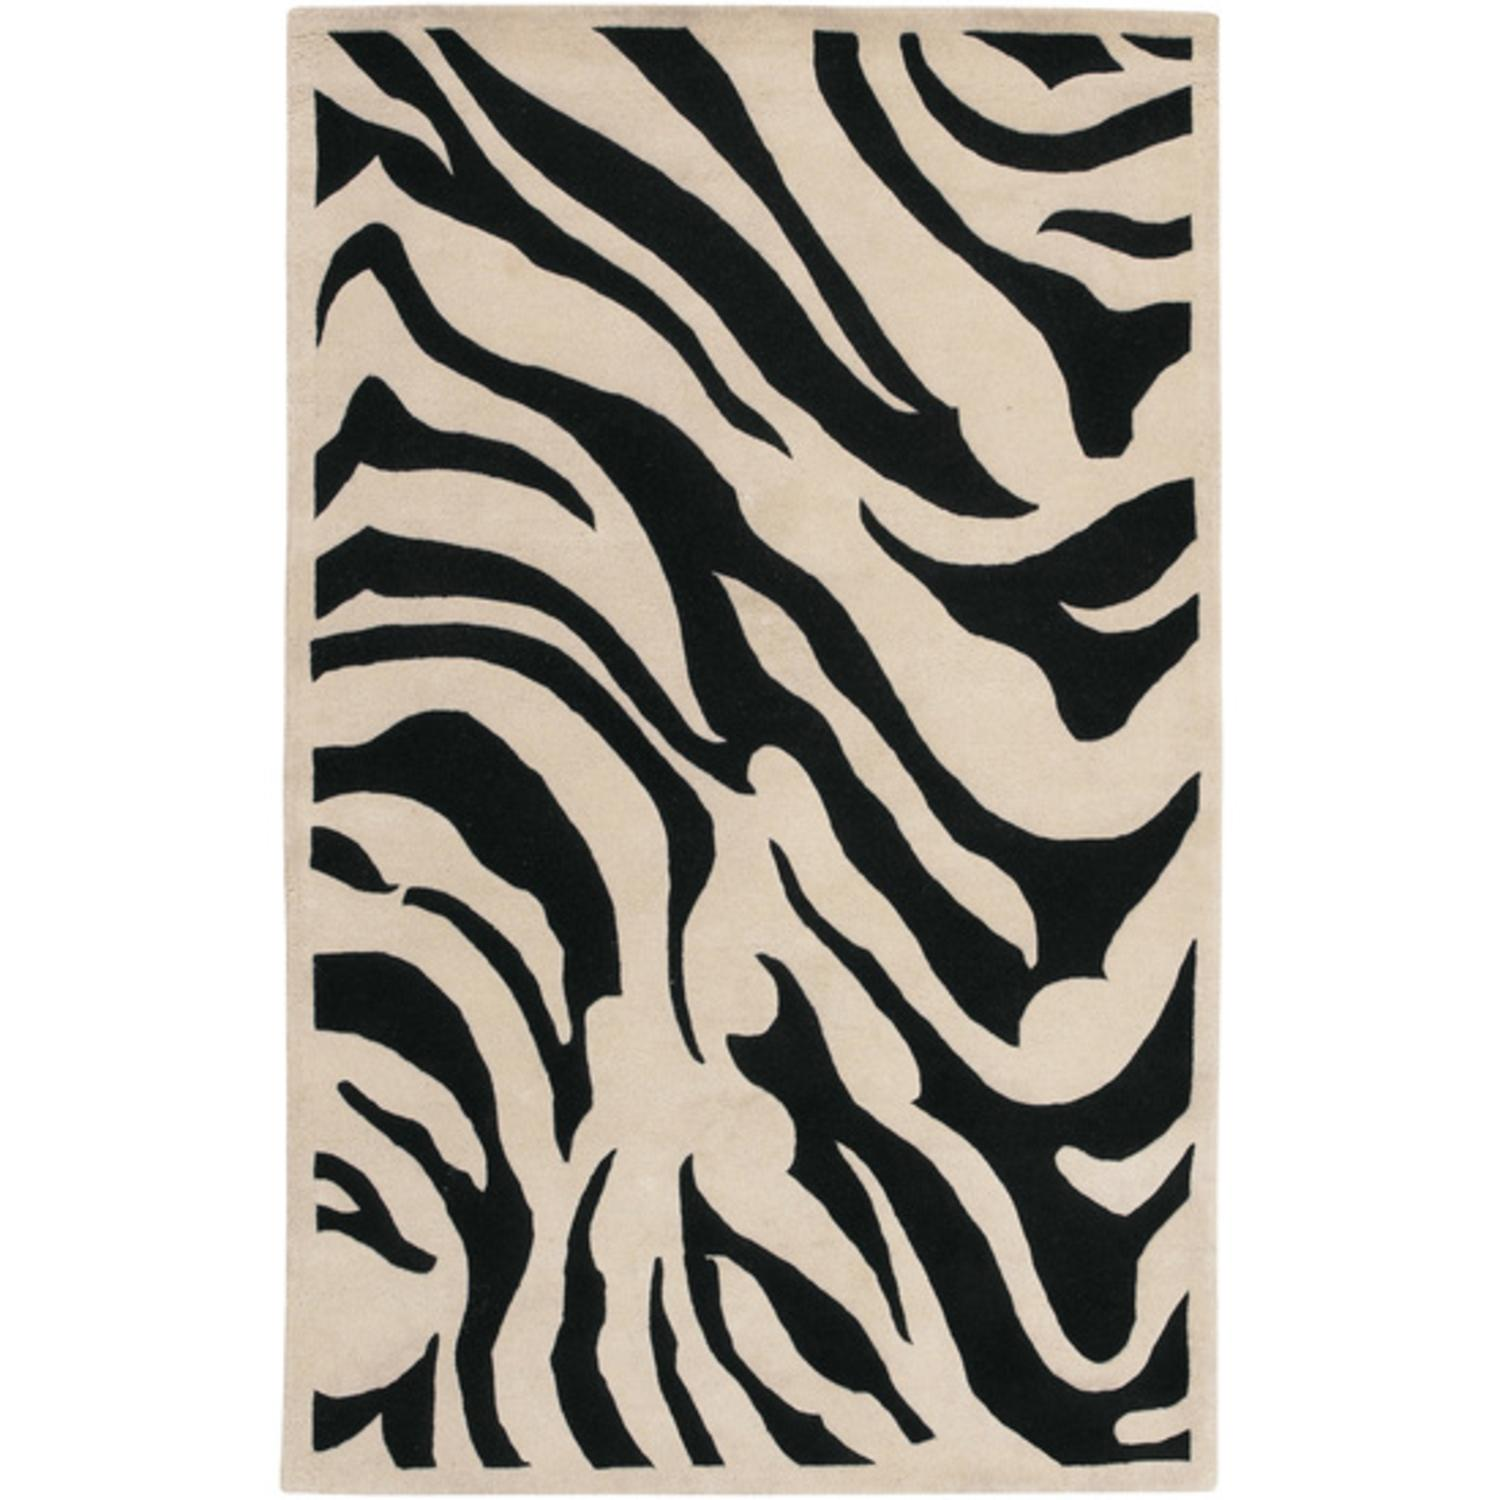 2' x 3' Zebra Animal Print Coal Black and Parchment Wool Area Throw Rug